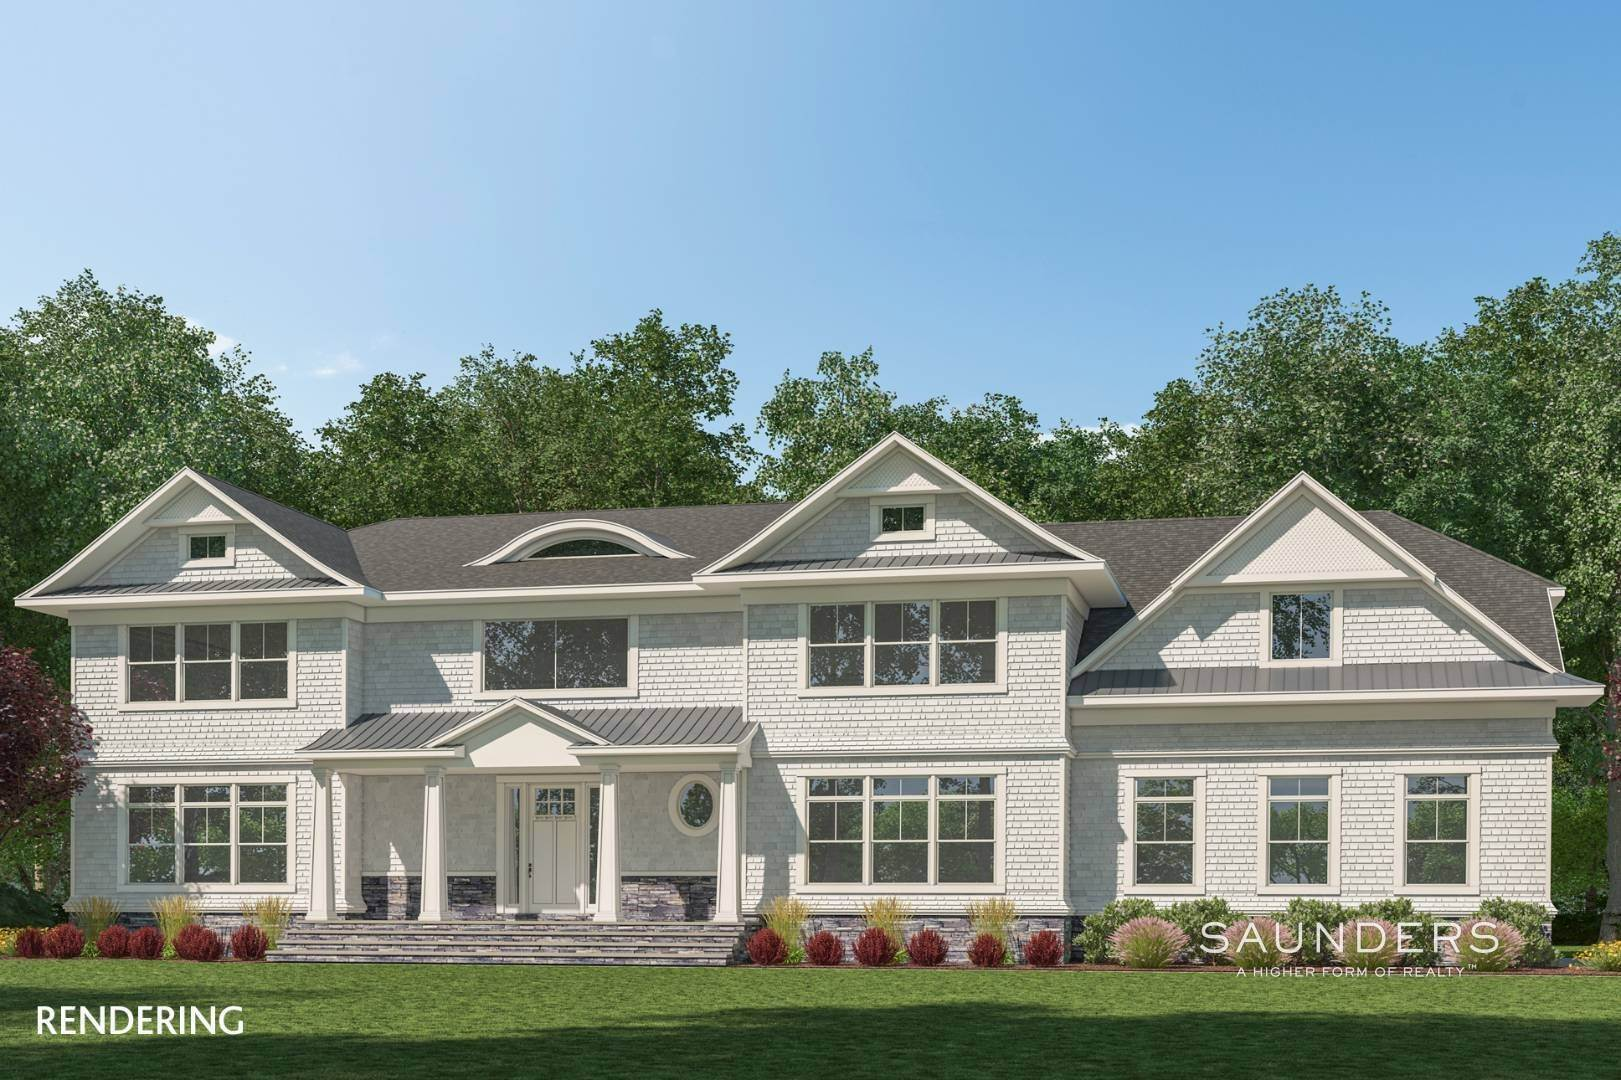 Single Family Homes for Sale at New Construction In Sagaponack 9 Forest Crossing, Sagaponack, Southampton Town, NY 11962